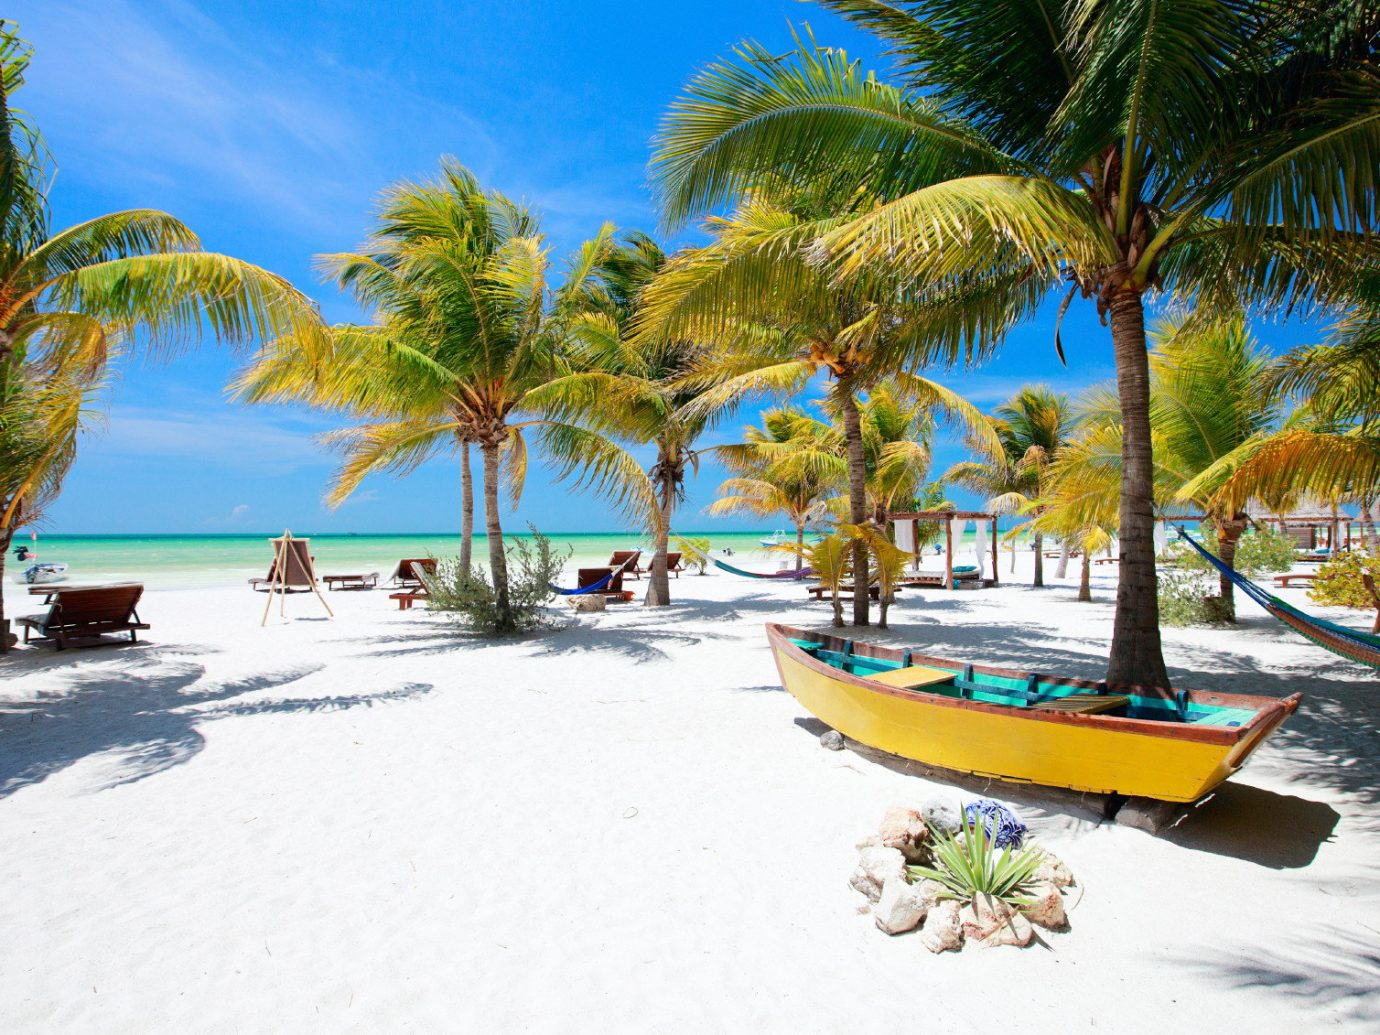 Hotels Trip Ideas tree outdoor sky Beach water palm leisure Resort caribbean vacation arecales Sea Ocean Pool Lagoon bay tropics Island plant shore sandy lined